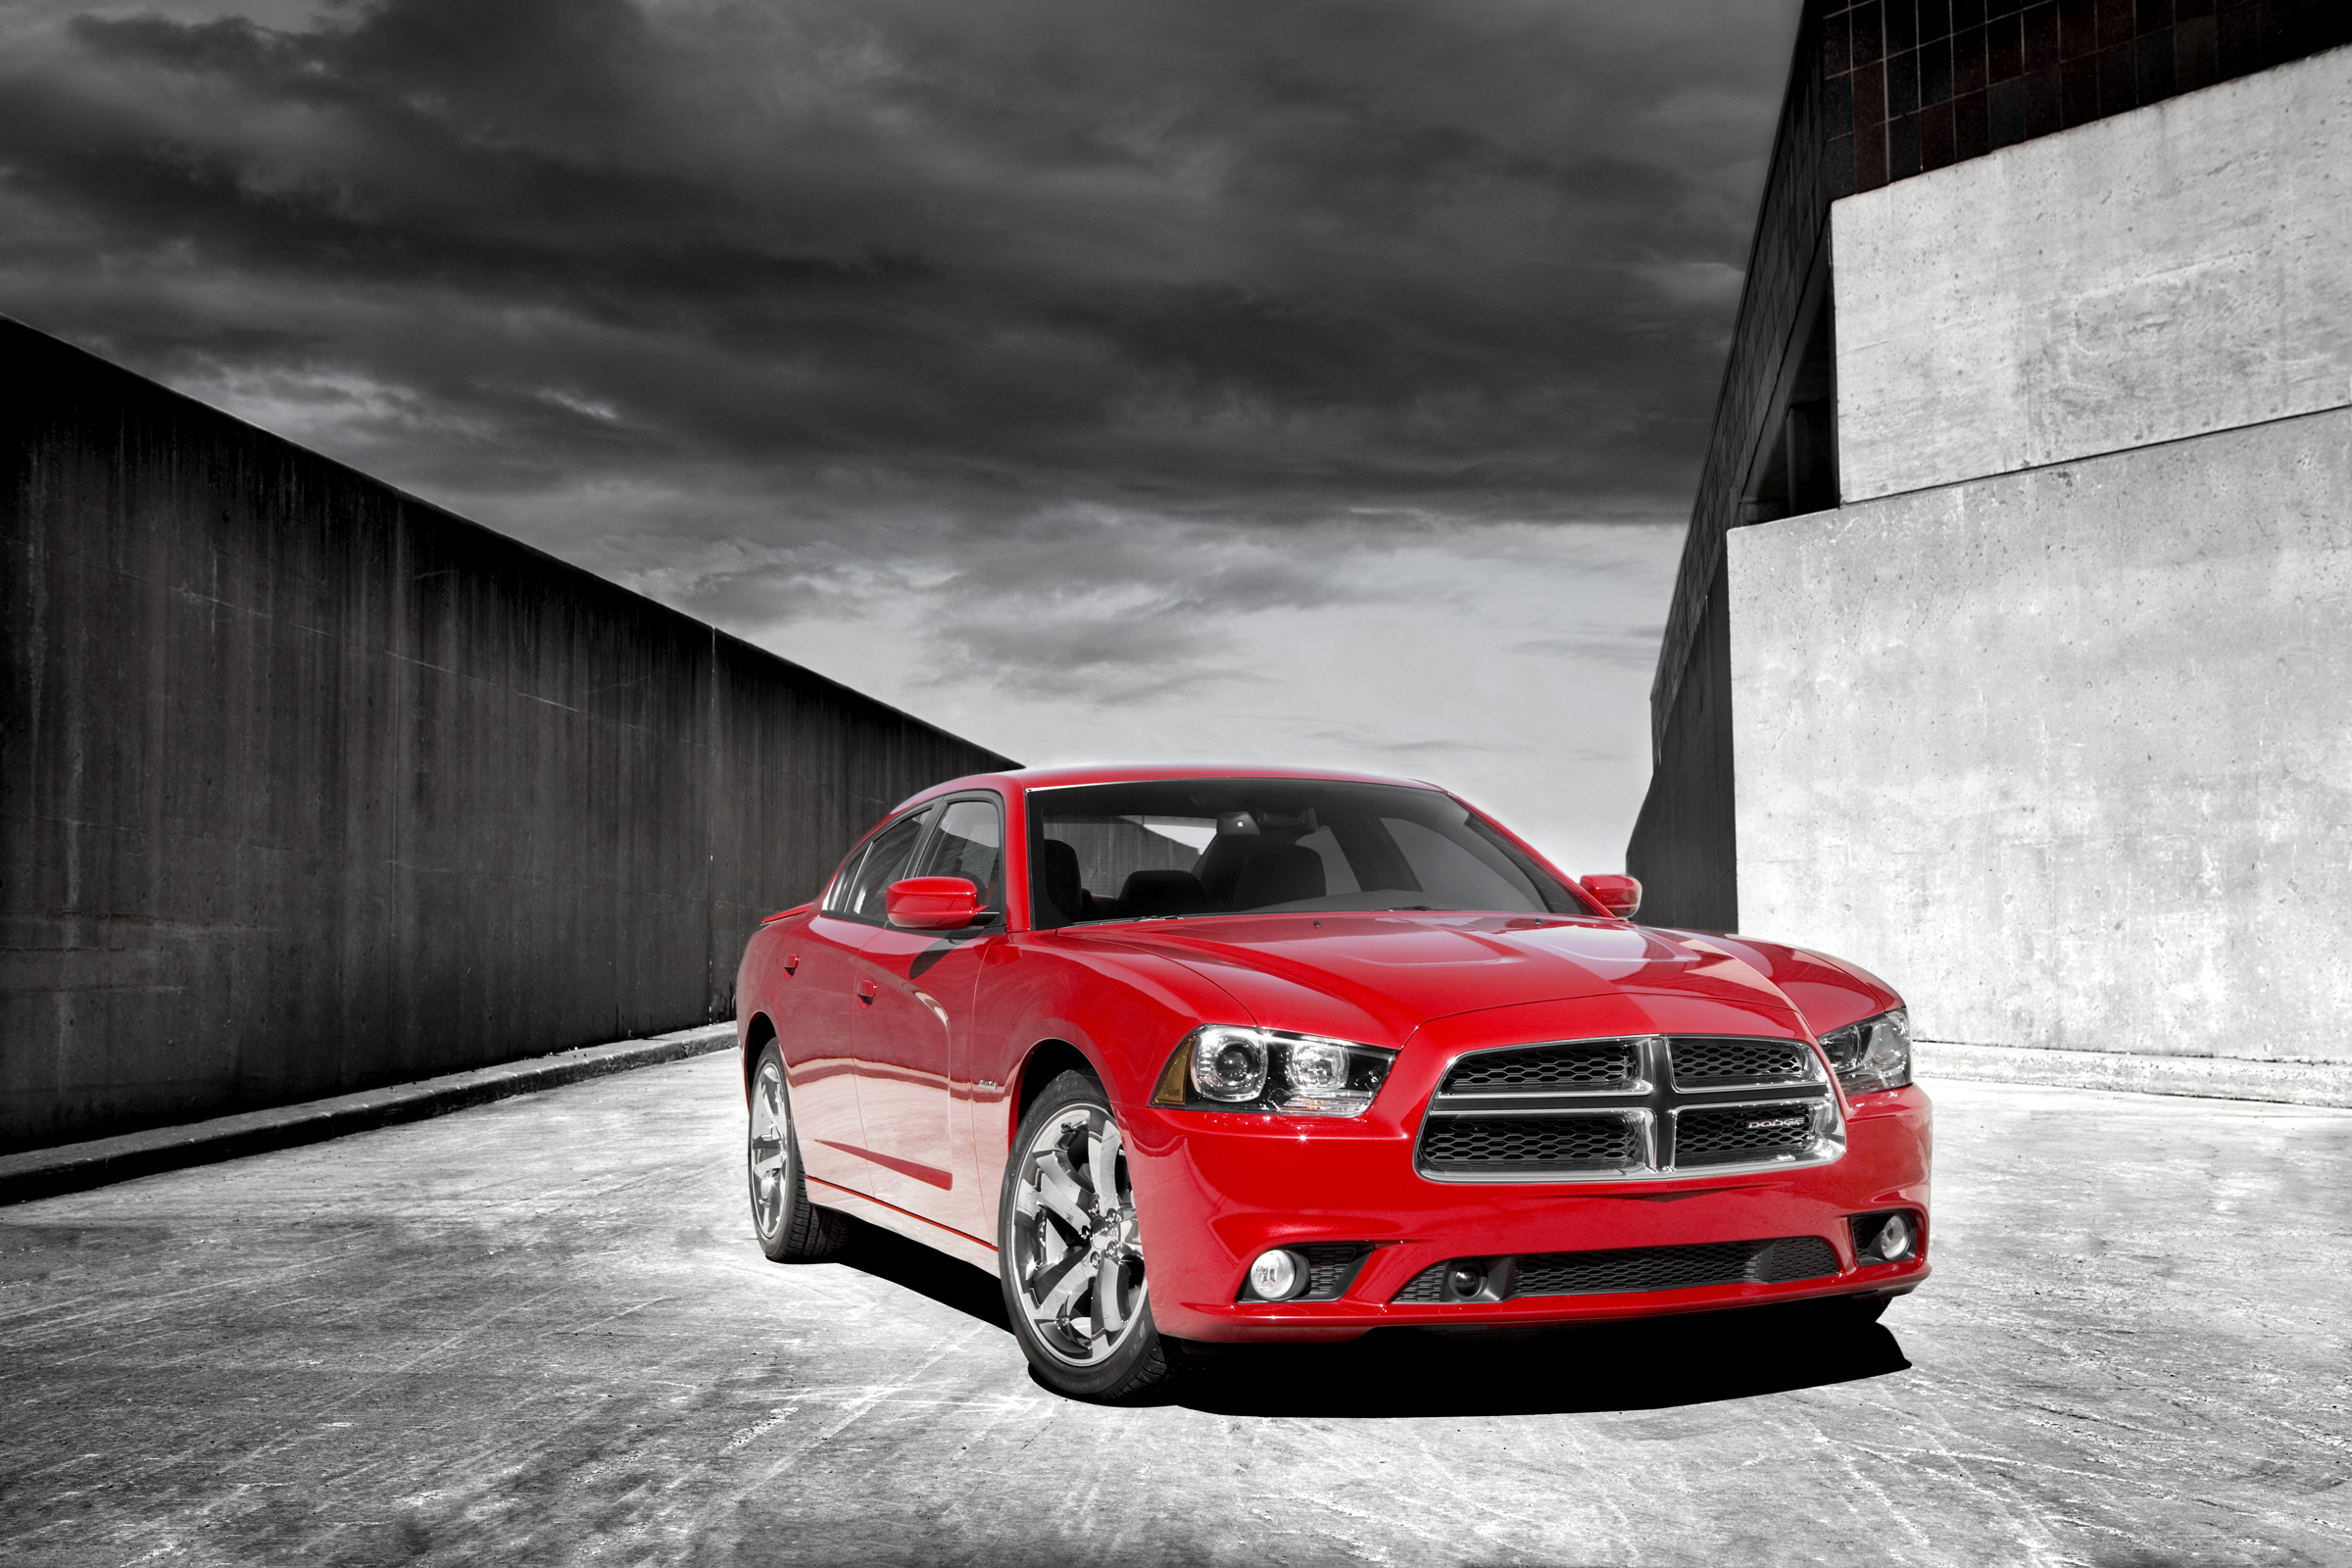 New For 2012 Dodge Charger Gets Eight Speed Transmission